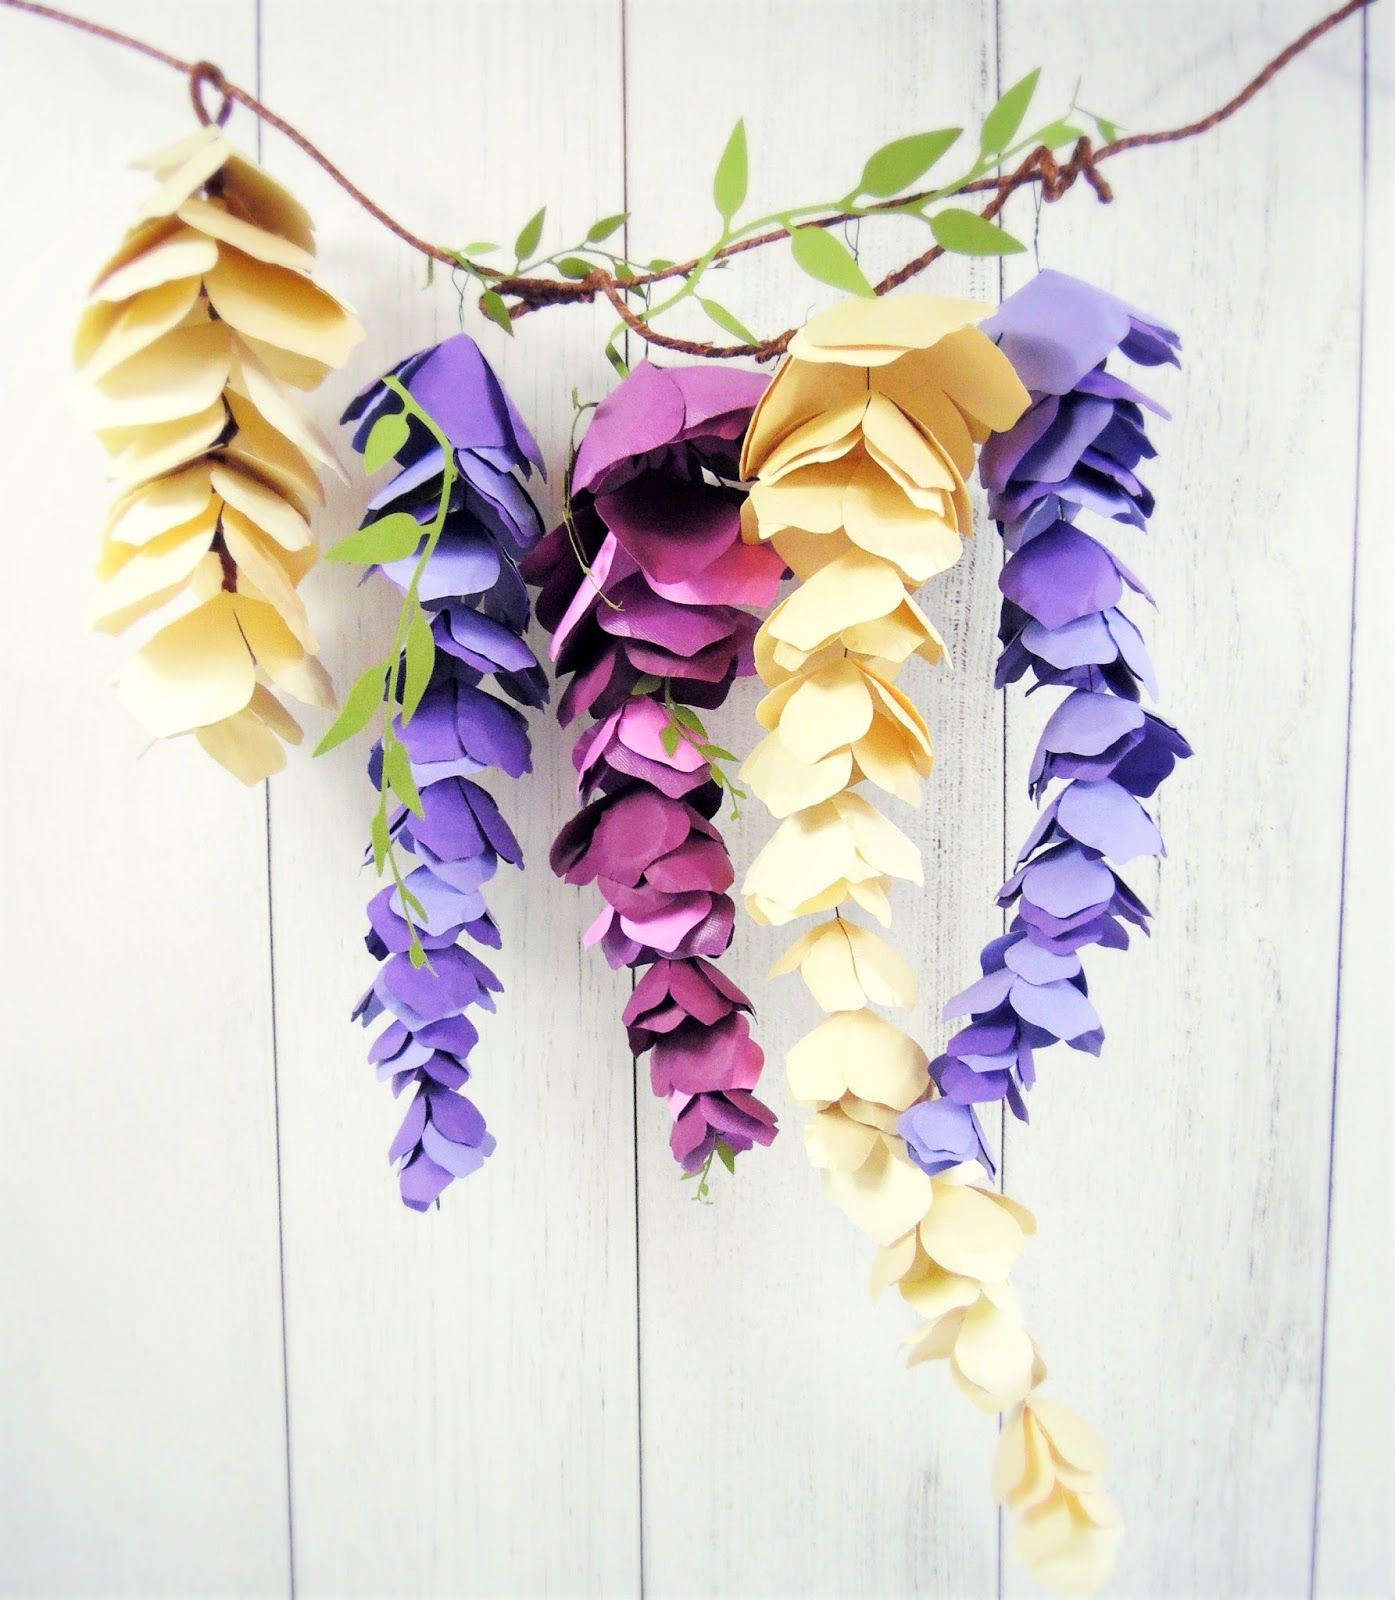 Hanging Paper Wisteria Tutorial Templates Pinterest Wisteria